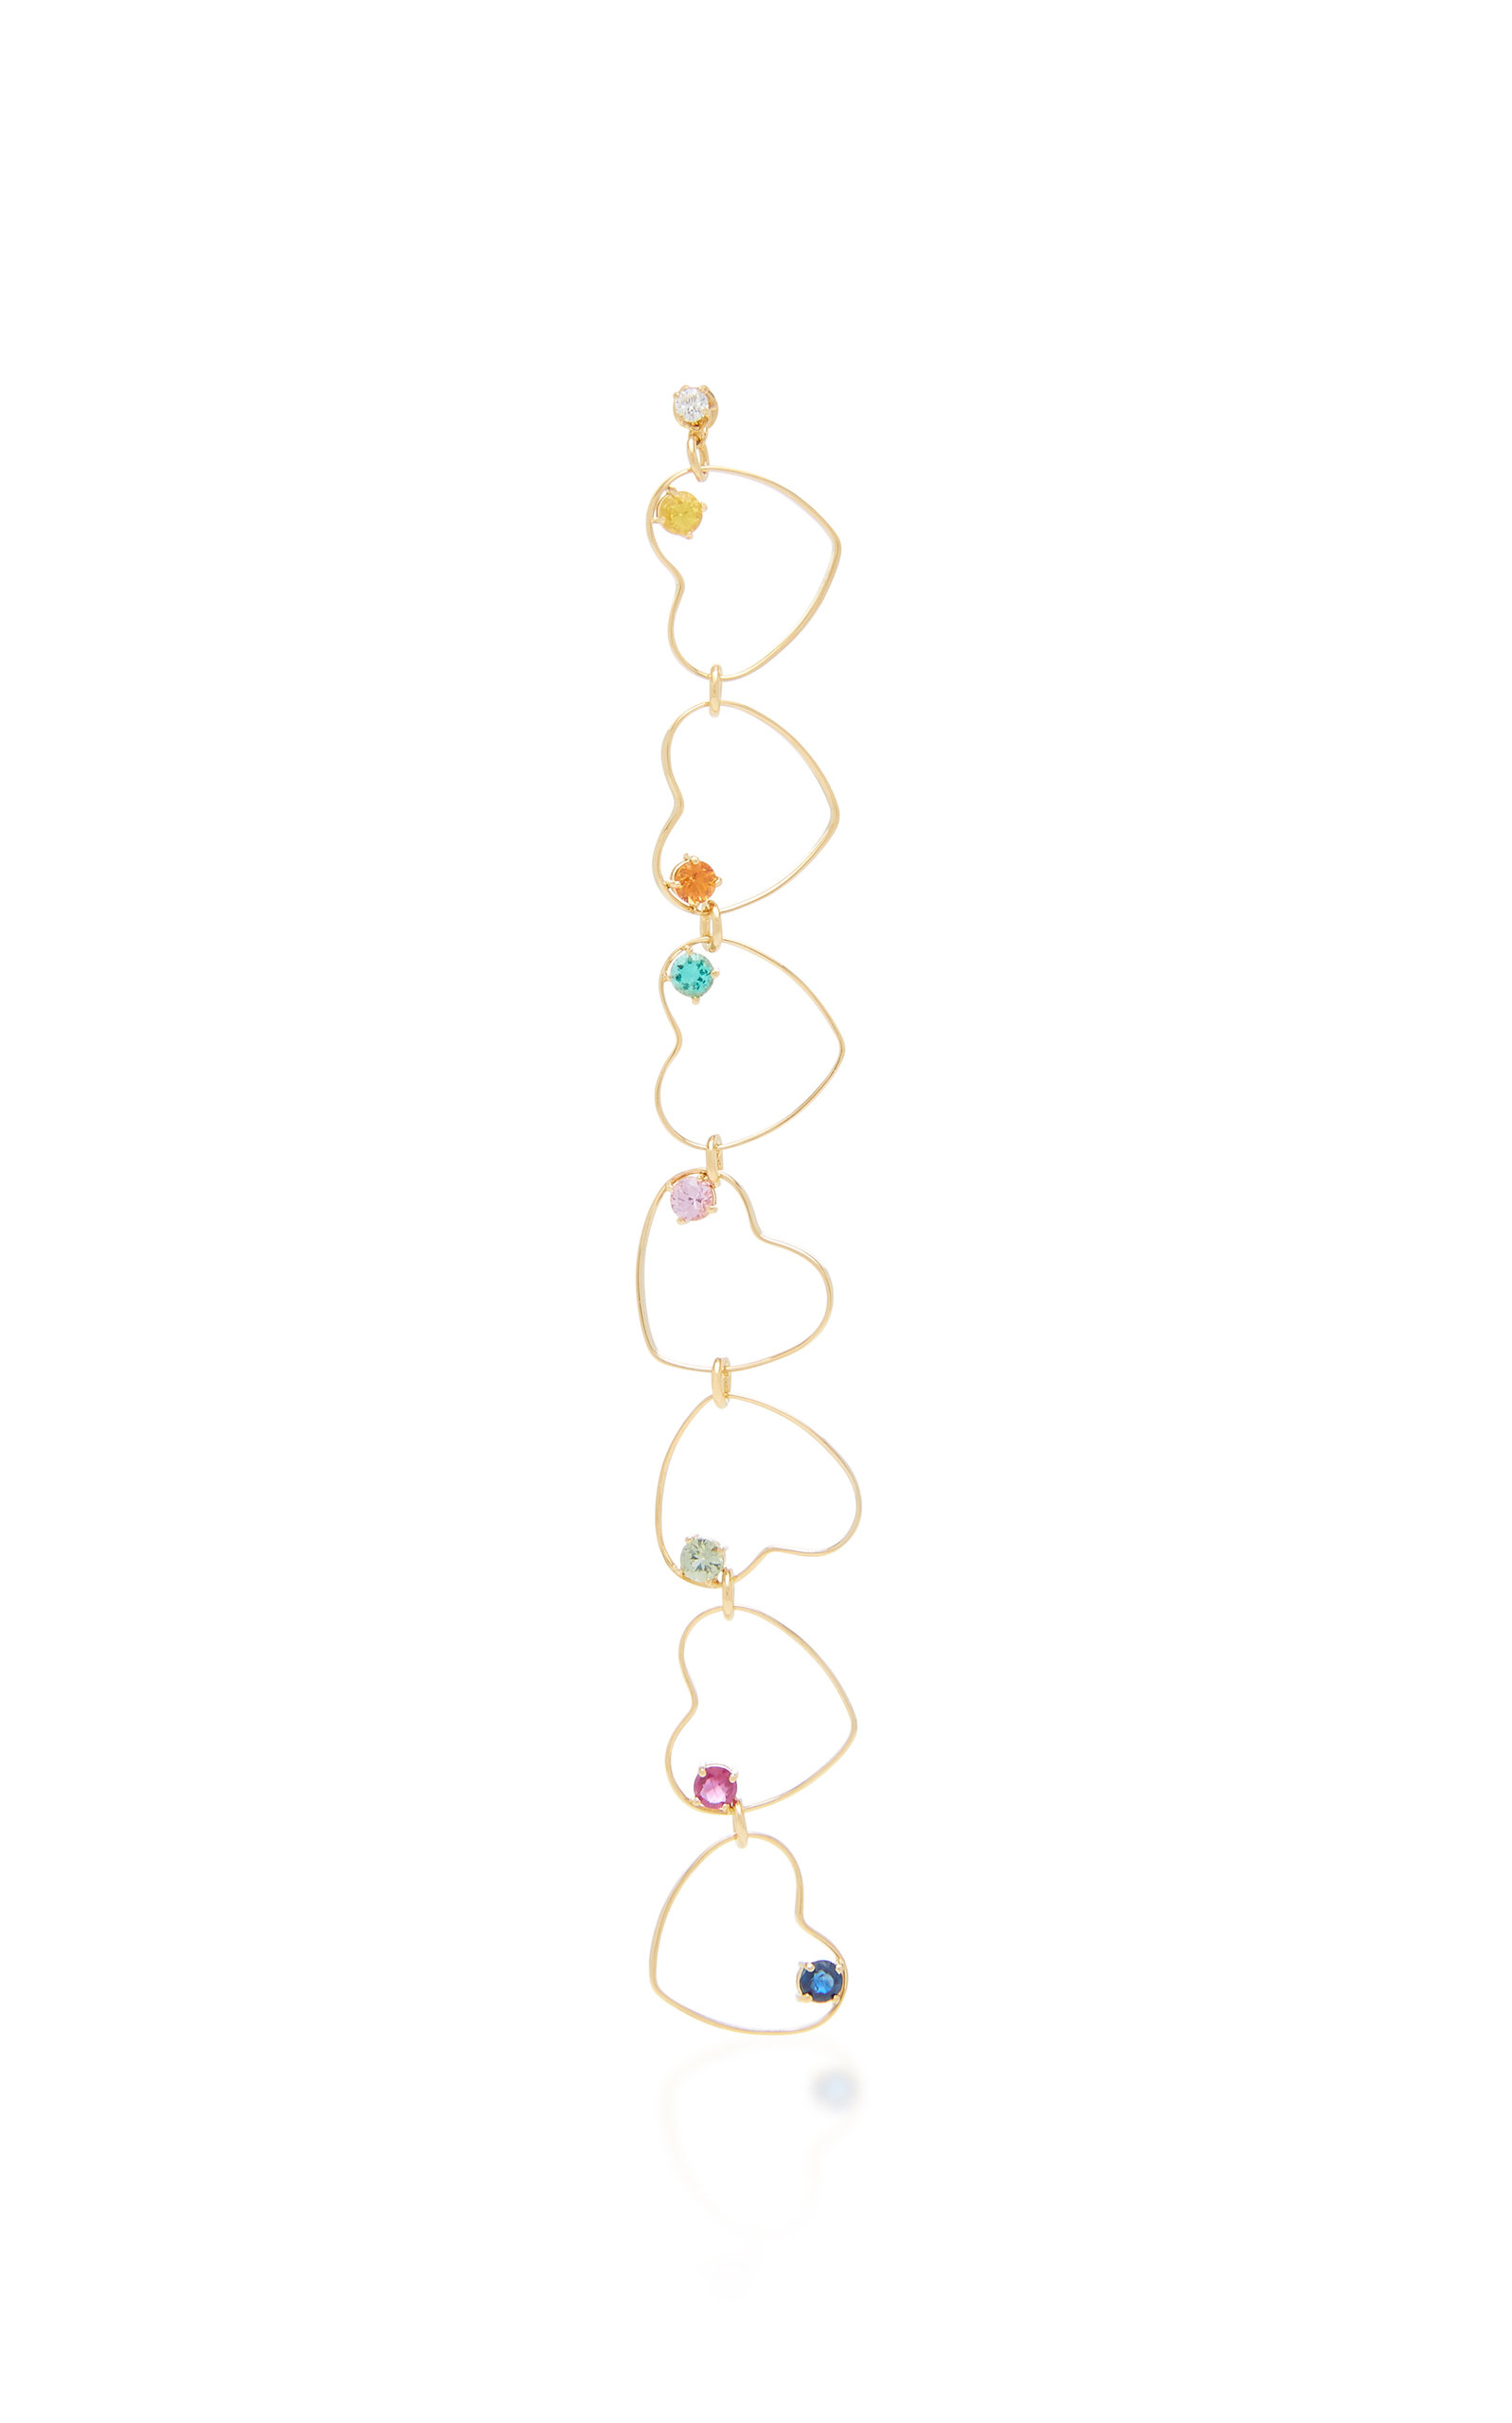 GIGI & JOUX HEART RAINBOW MULTI-STONE 24K GOLD DROP EARRING